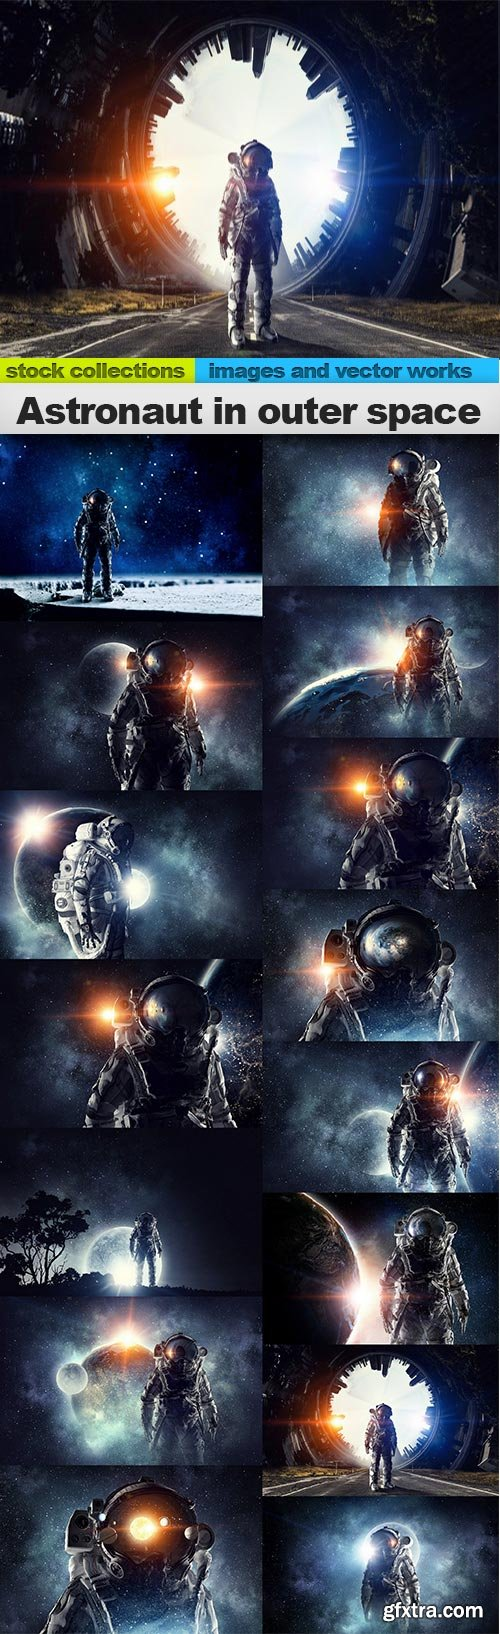 Astronaut in outer space, 15 x UHQ JPEG